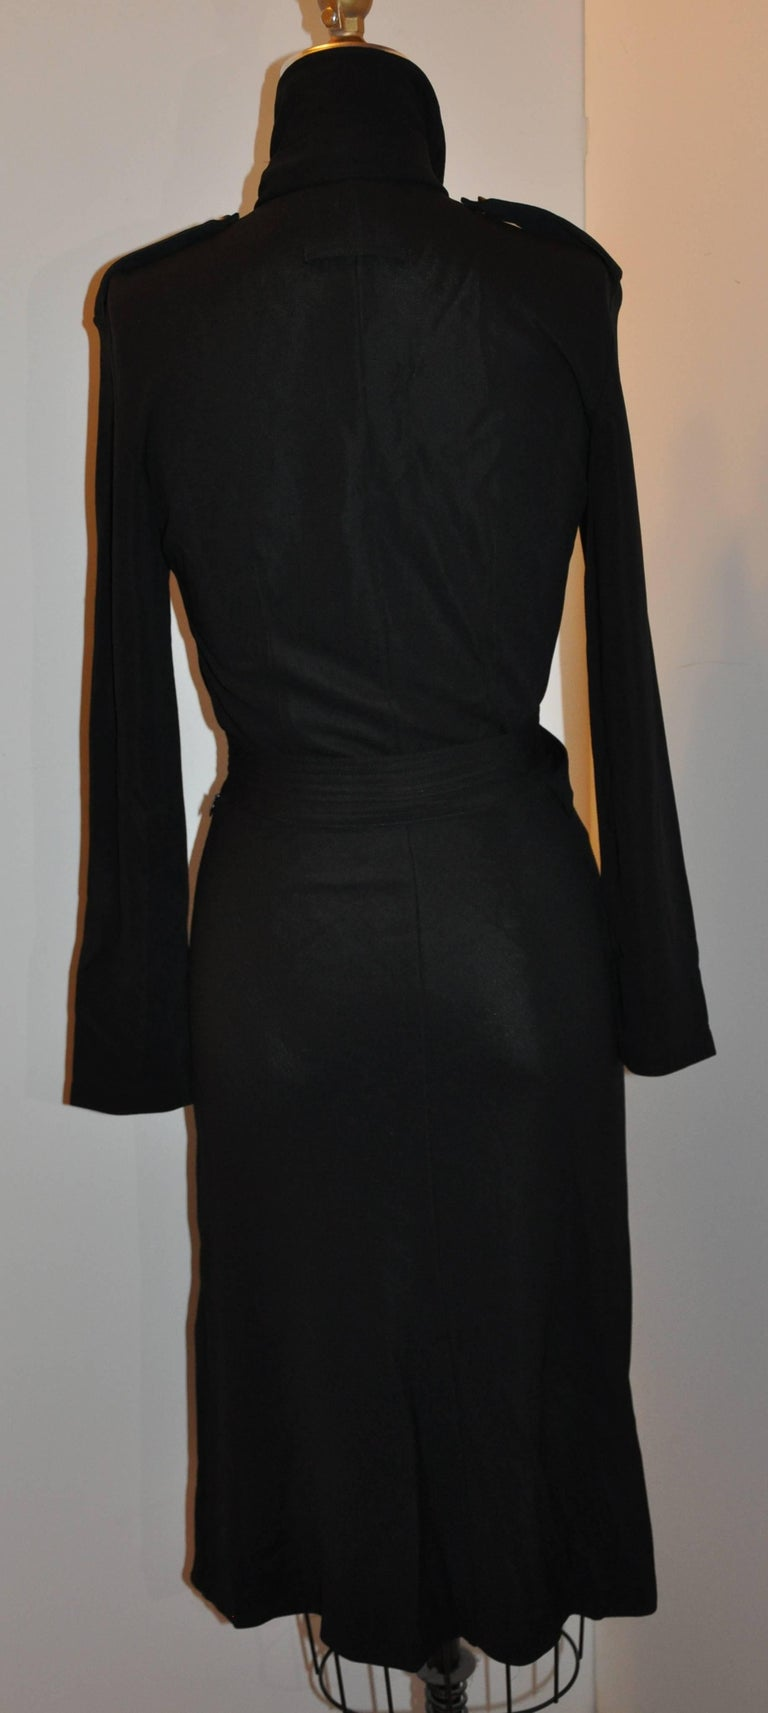 Jean Paul Gaultier wonderfully elegant yet sexy versatile body-hugging black dress has the option of a daytime dress which can be worn right into the evening. The optional matching neck tie as well as the matching belt with buckle give one